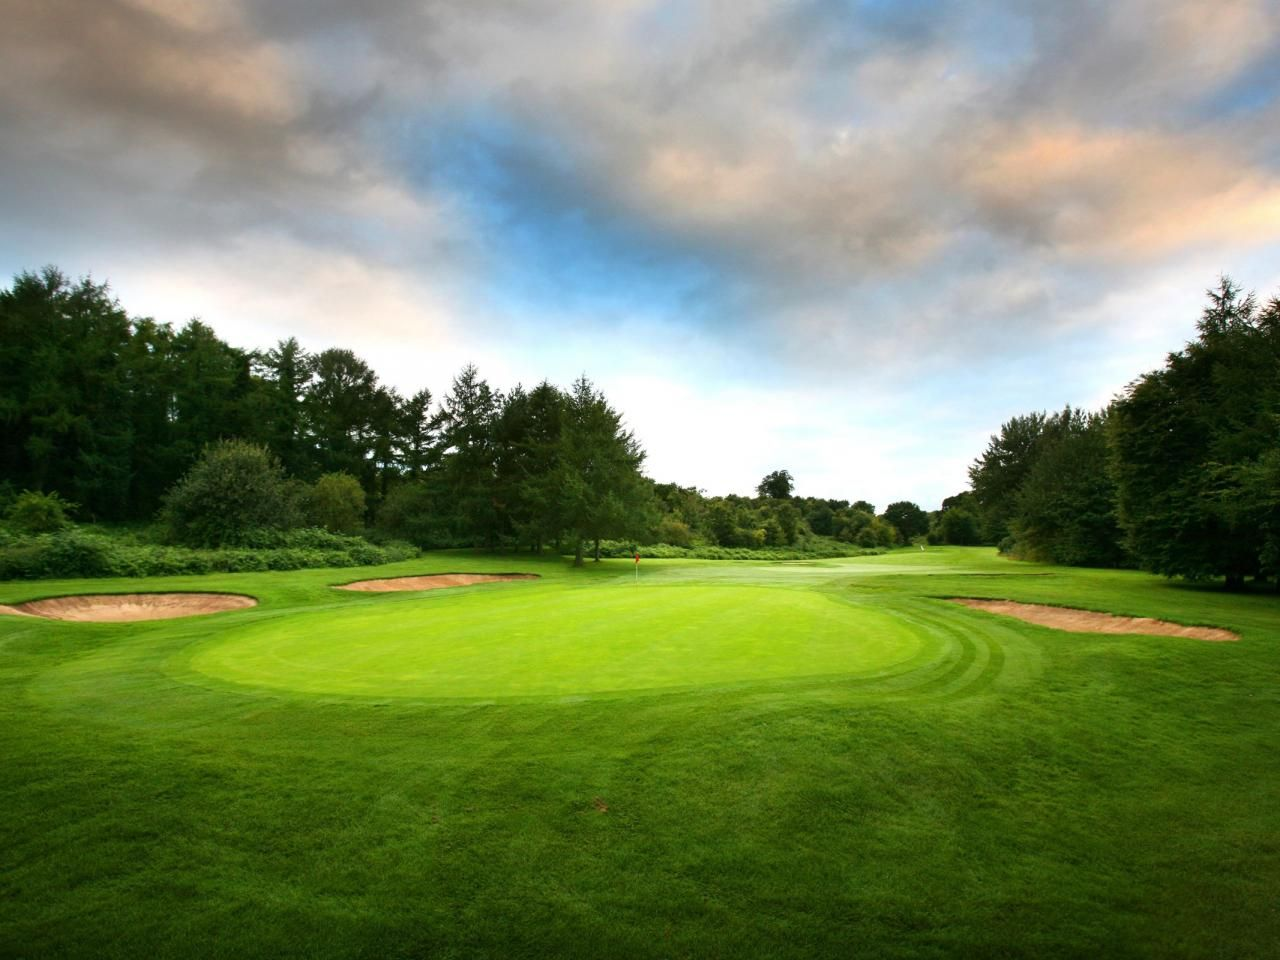 Golf Nature Green Grass Wallpapers Via Http Www Wallsave Com Golf Photography Golf Courses Golf Pictures